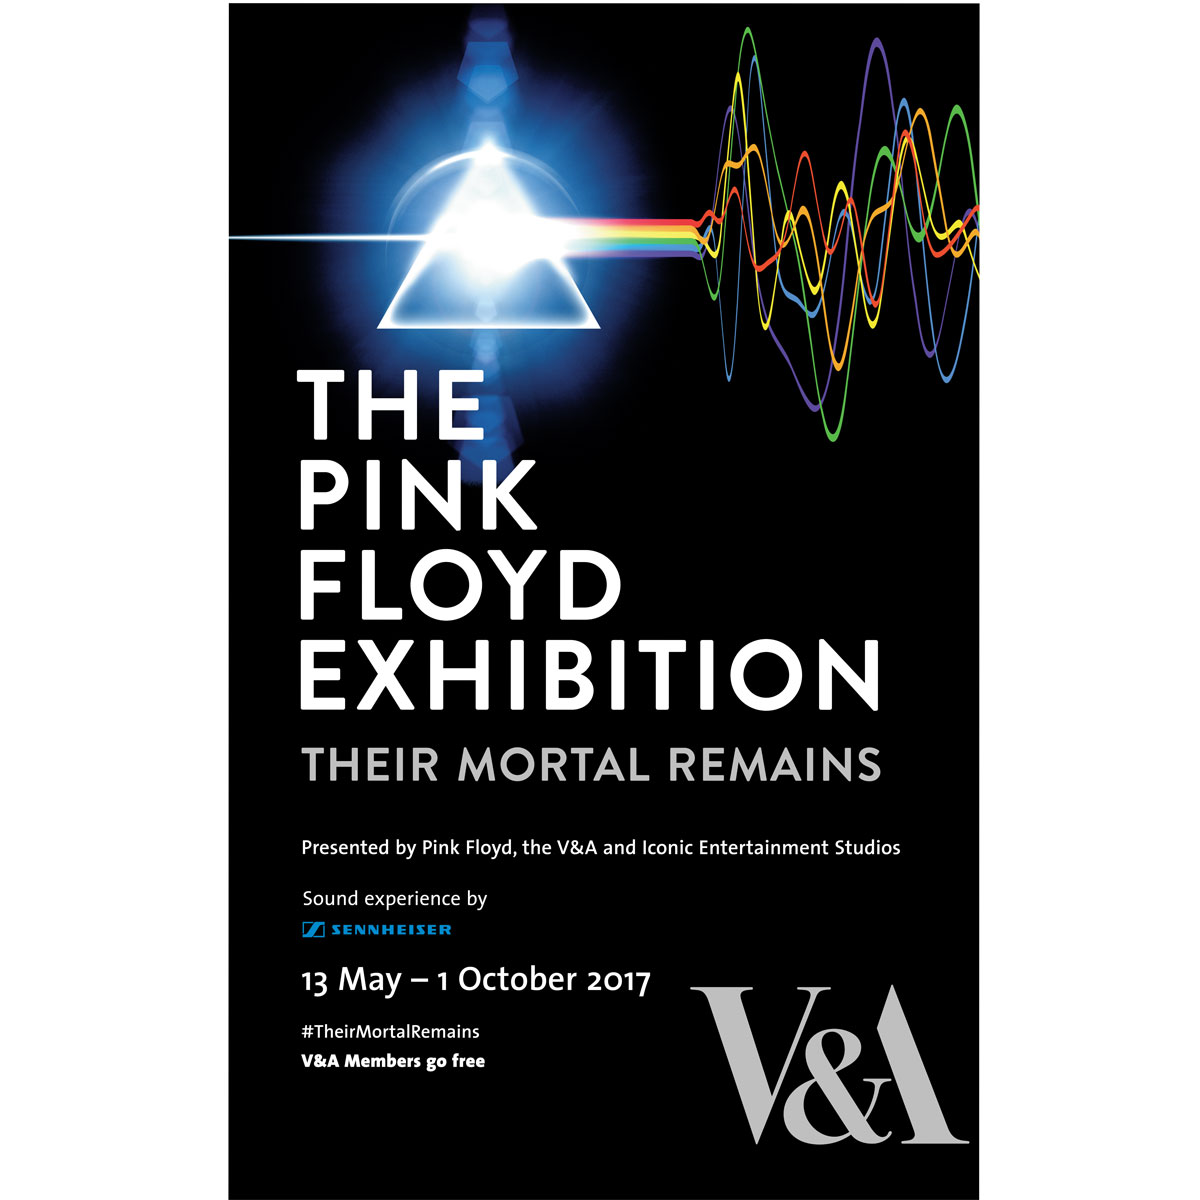 The Pink Floyd Exhibition: Their Mortal Remains exhibition poster